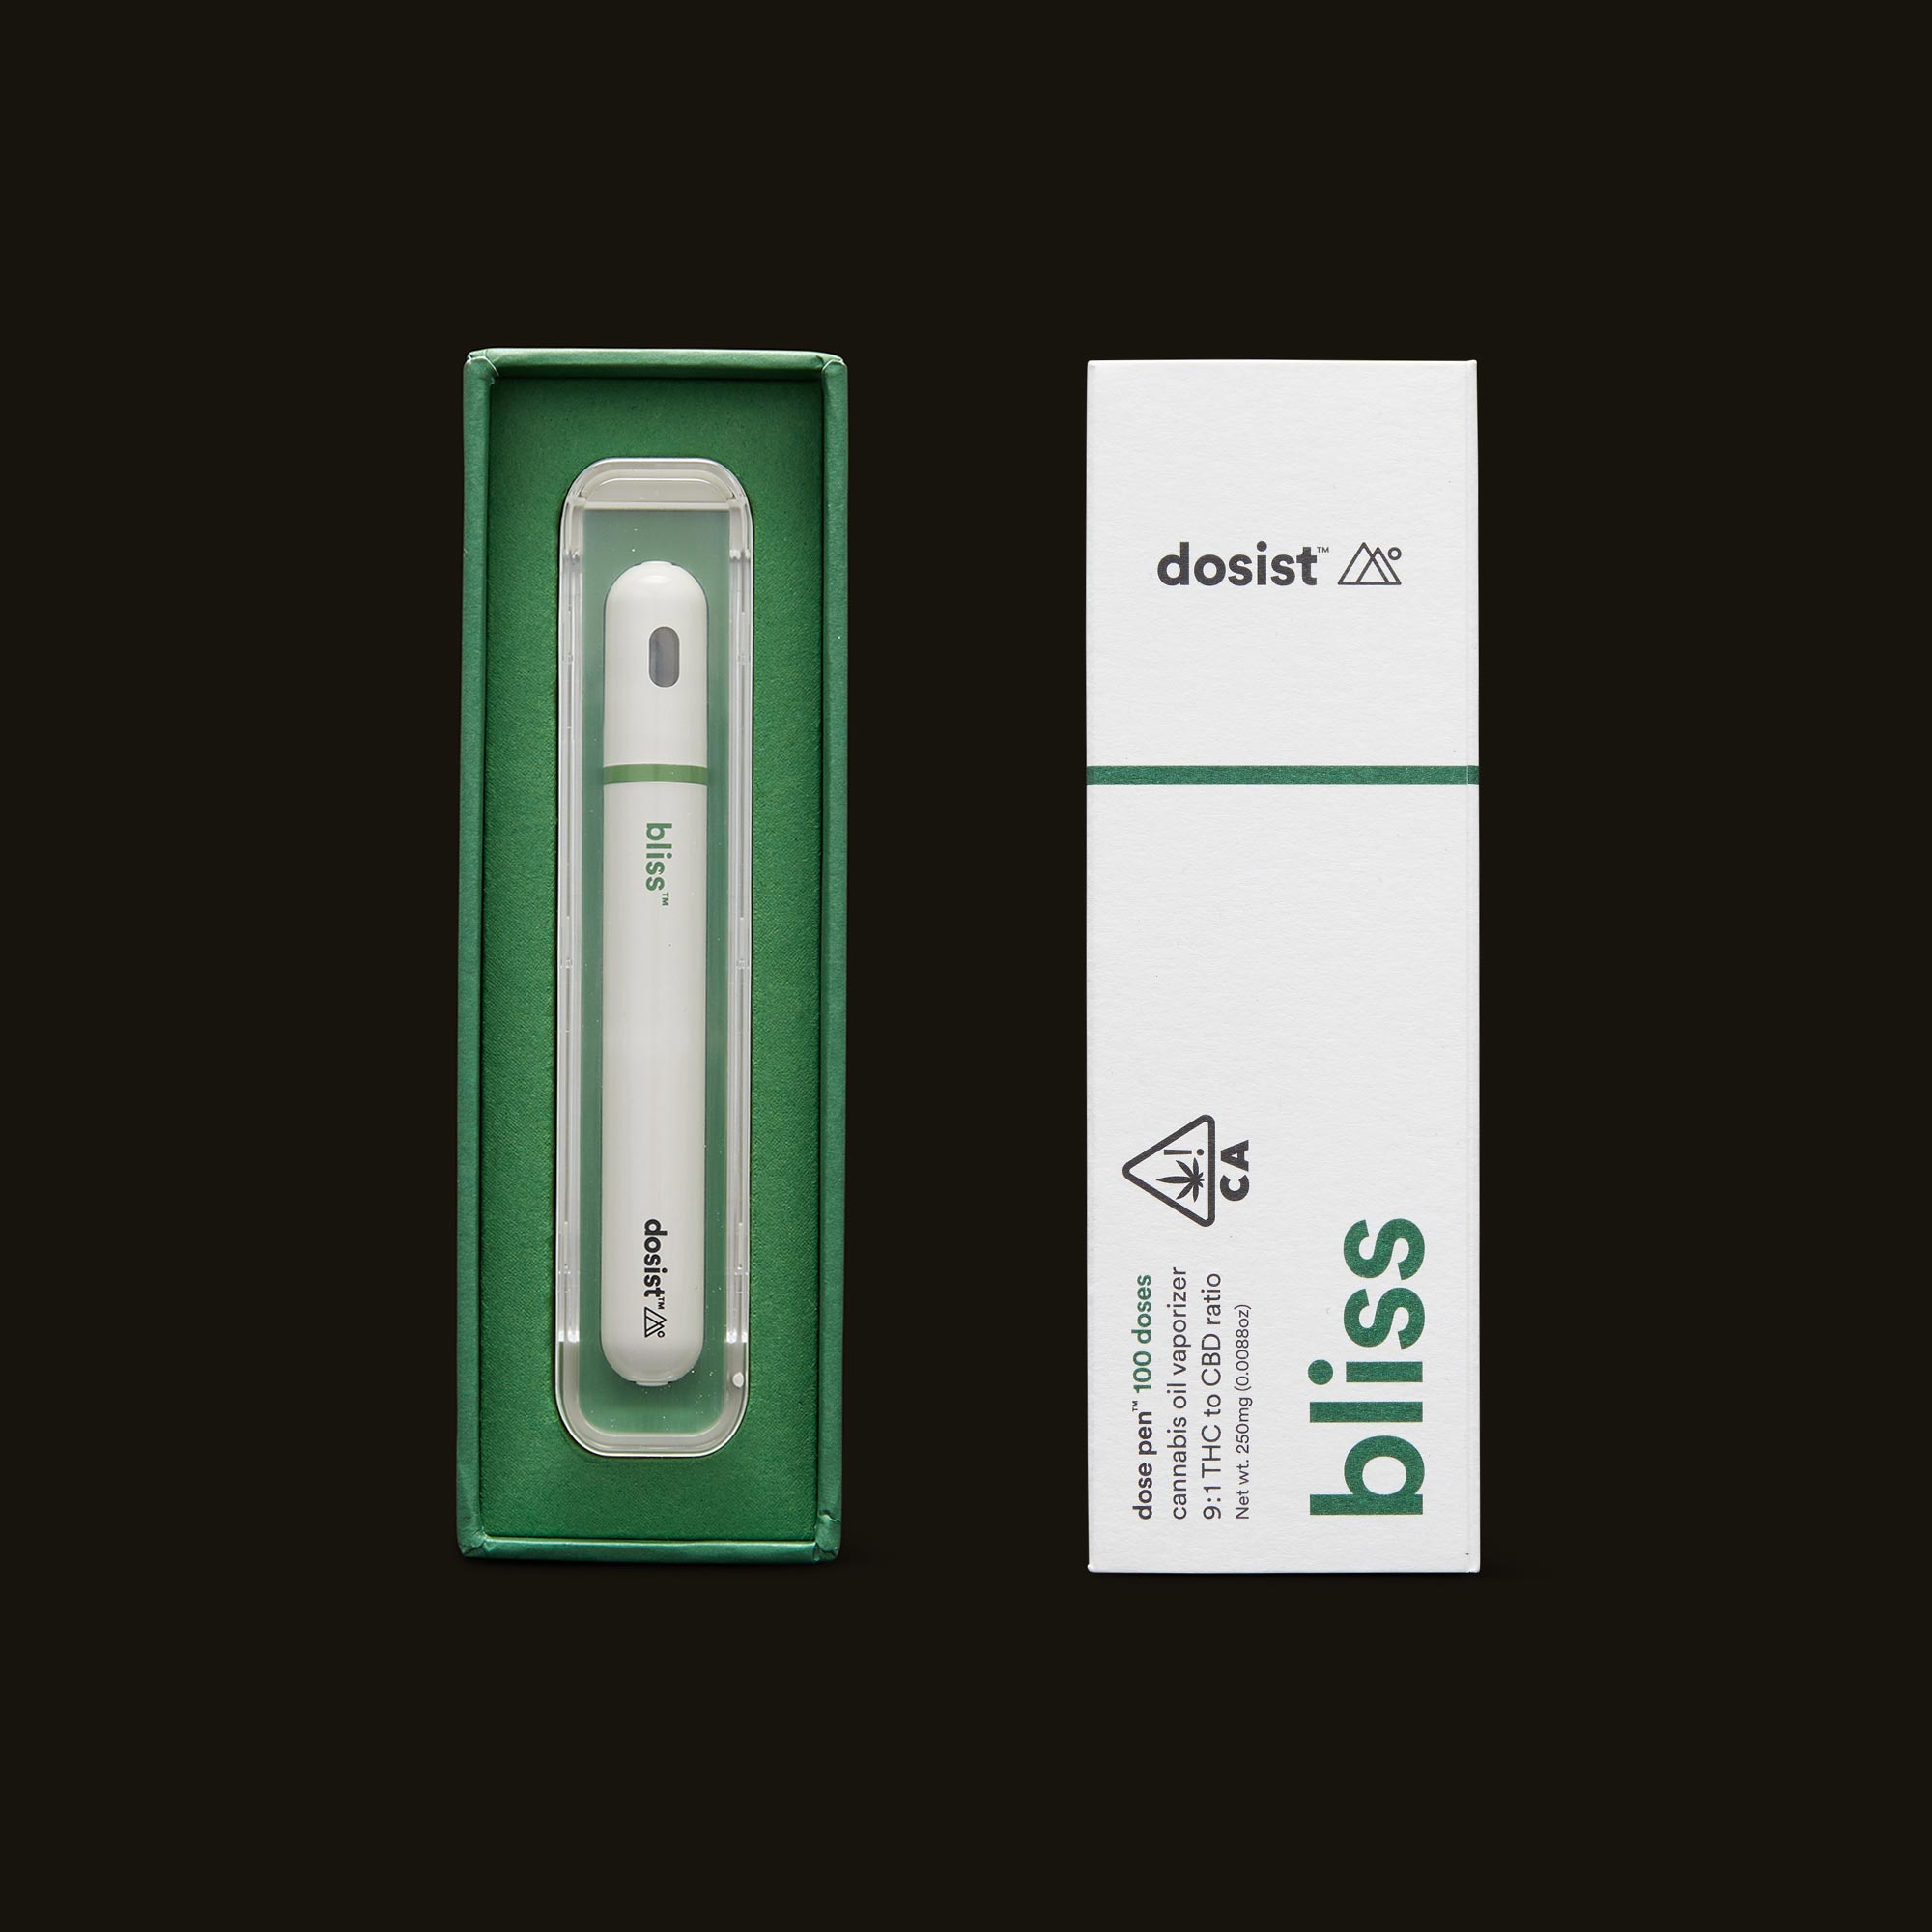 dosist bliss dose pen open box